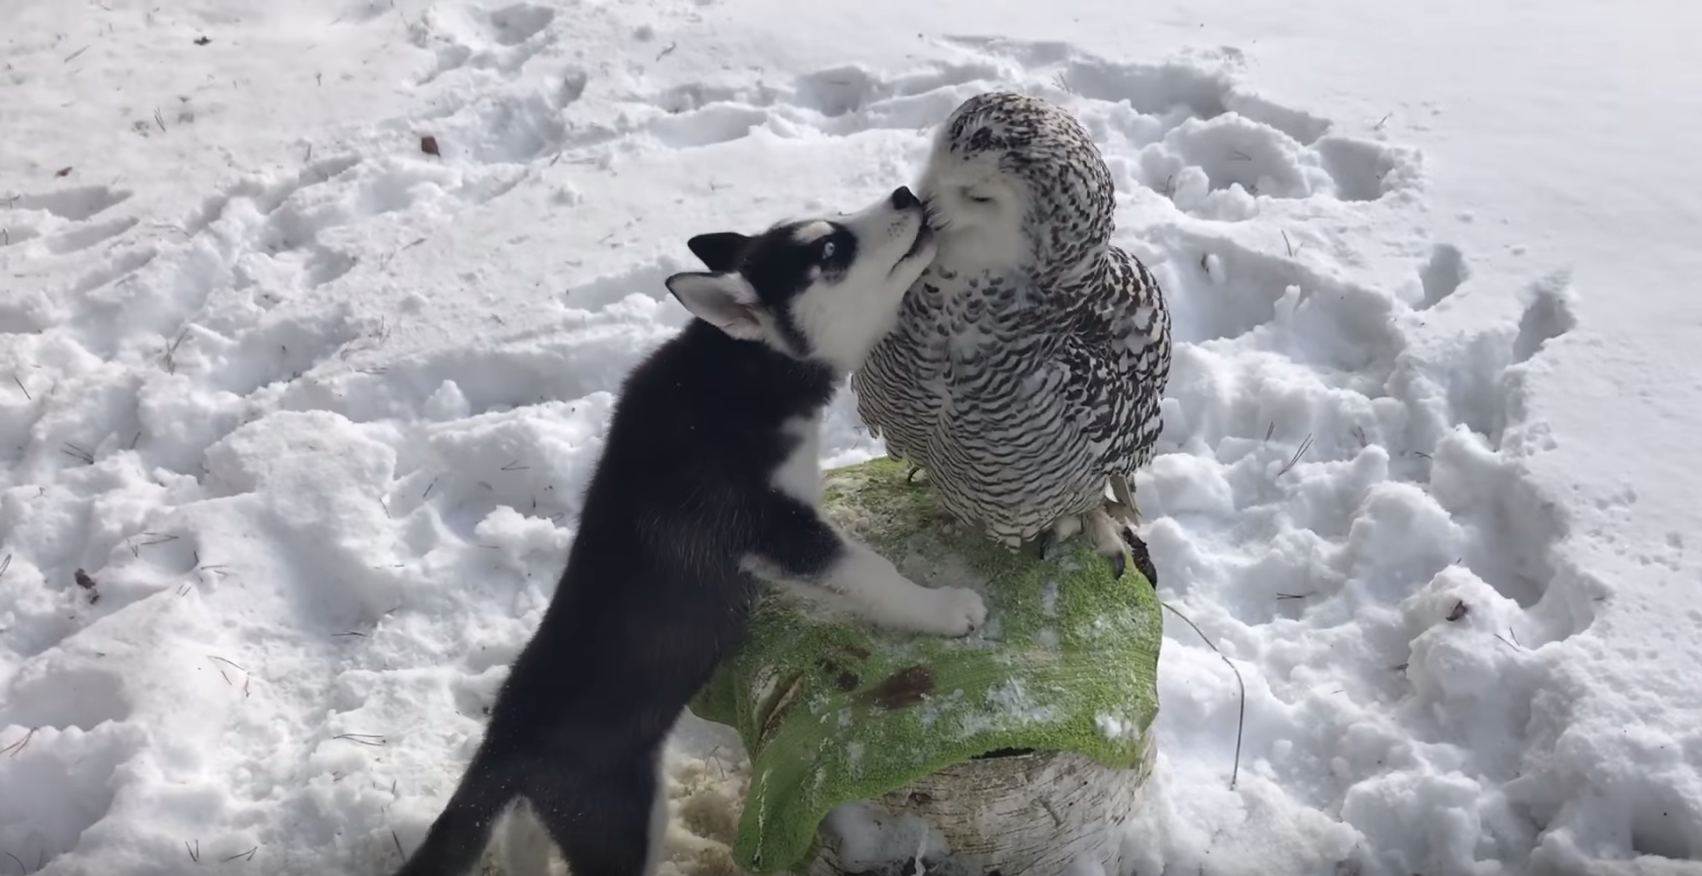 Most Adorable Video Ever: BFFs: Snowy Owl, Husky Pup Lick, Preen and Play With Each Other